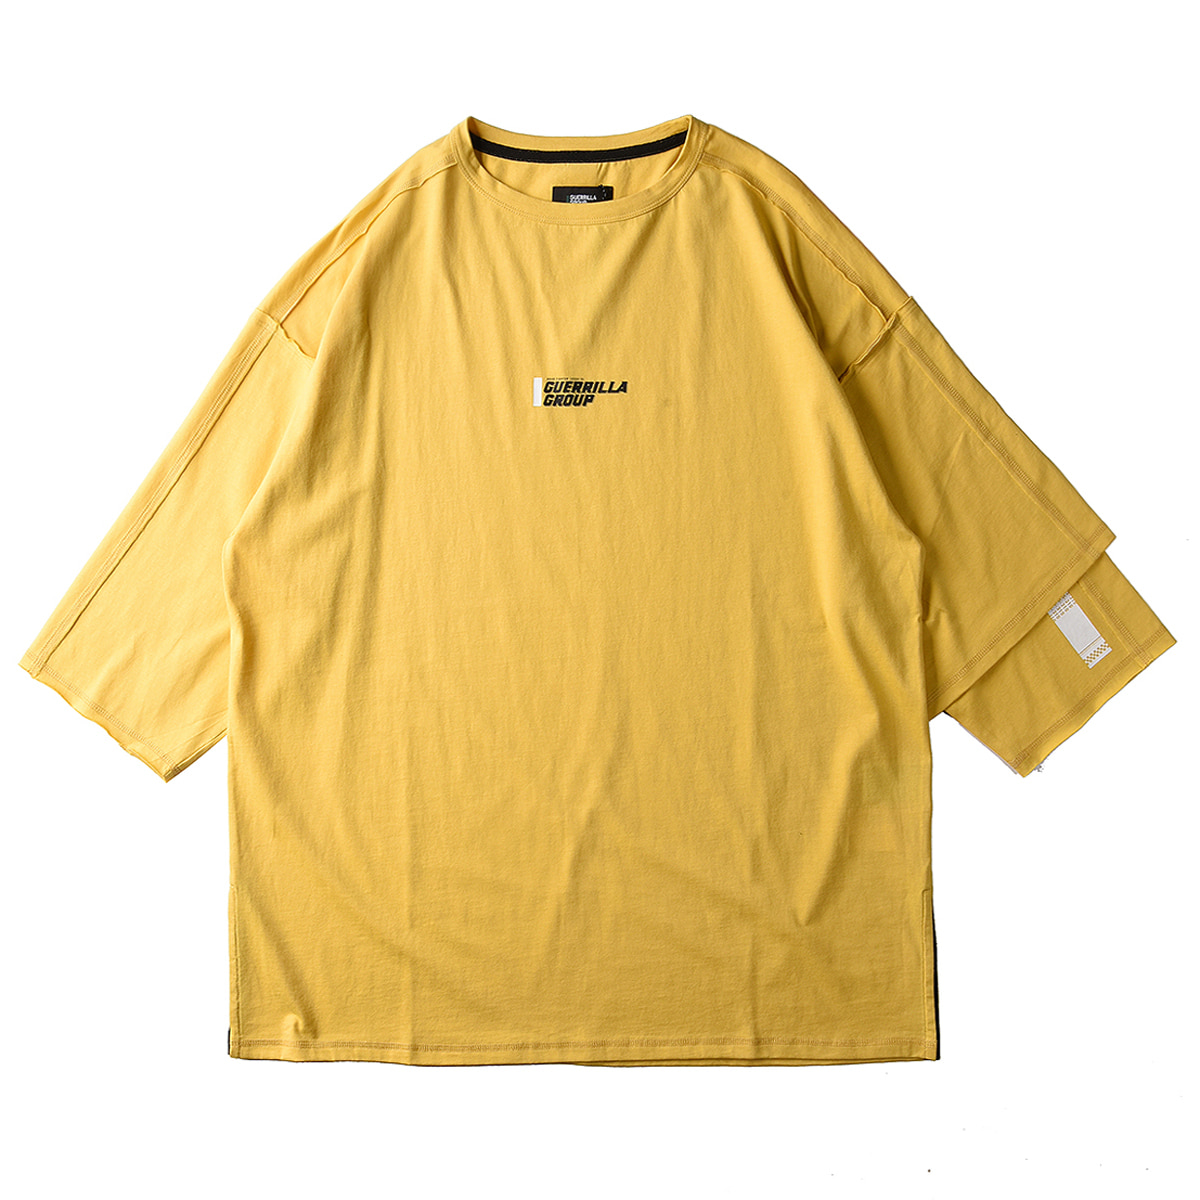 "GUERRILLA GROUP Road Fighter Asym L/S Tee ""Mustard Yellow"""